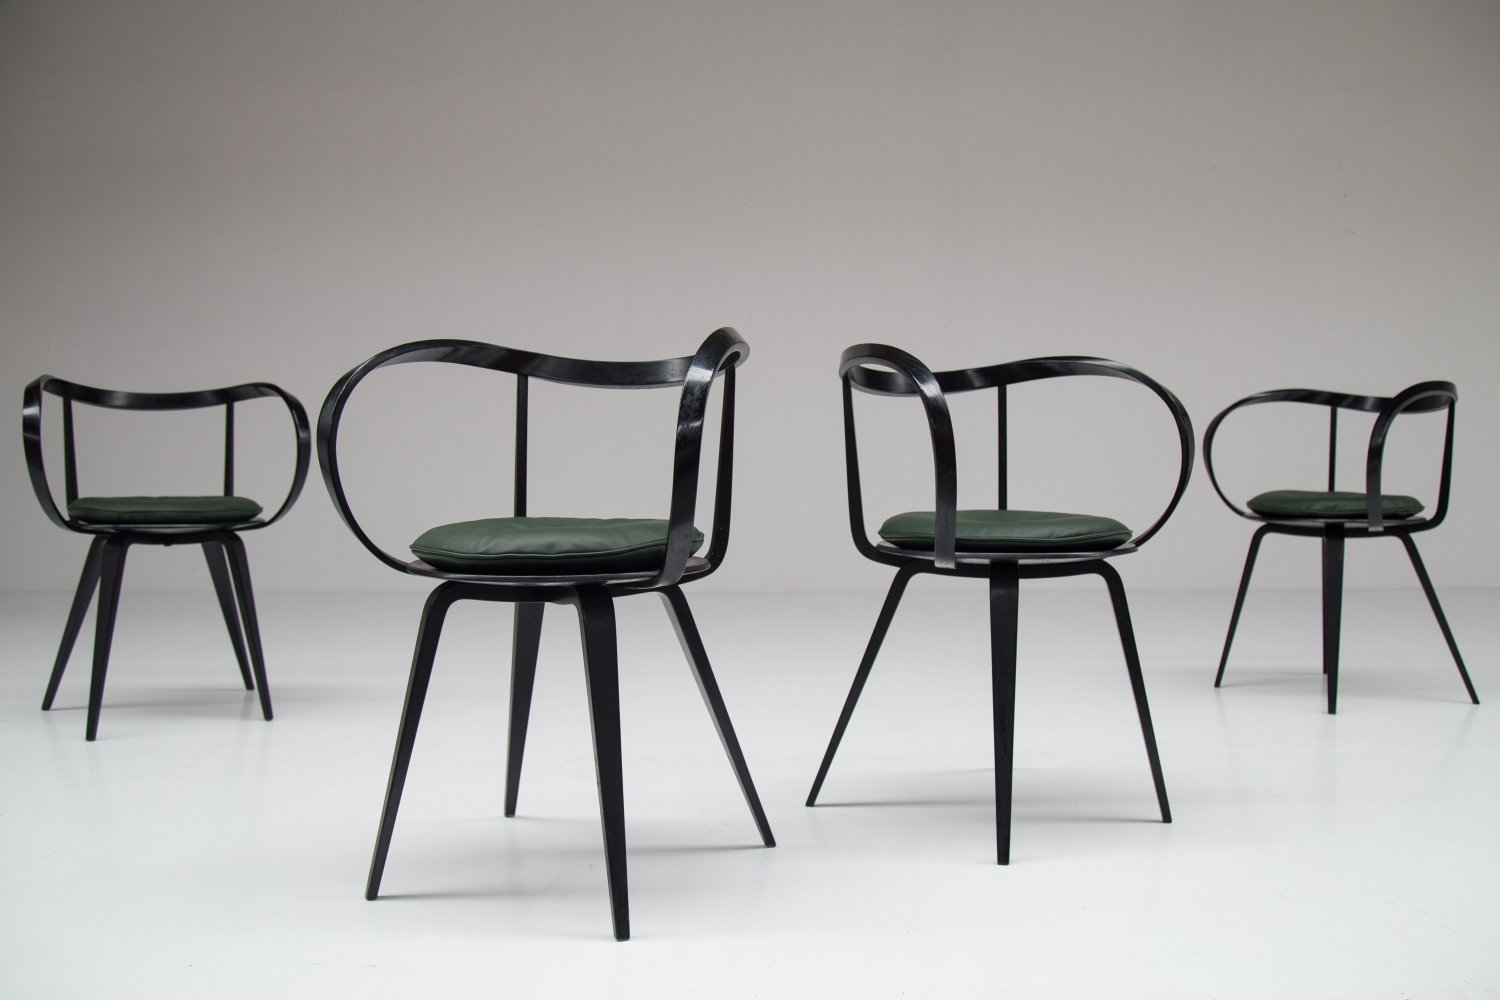 Set of 4 Pretzel chairs by George Nelson.